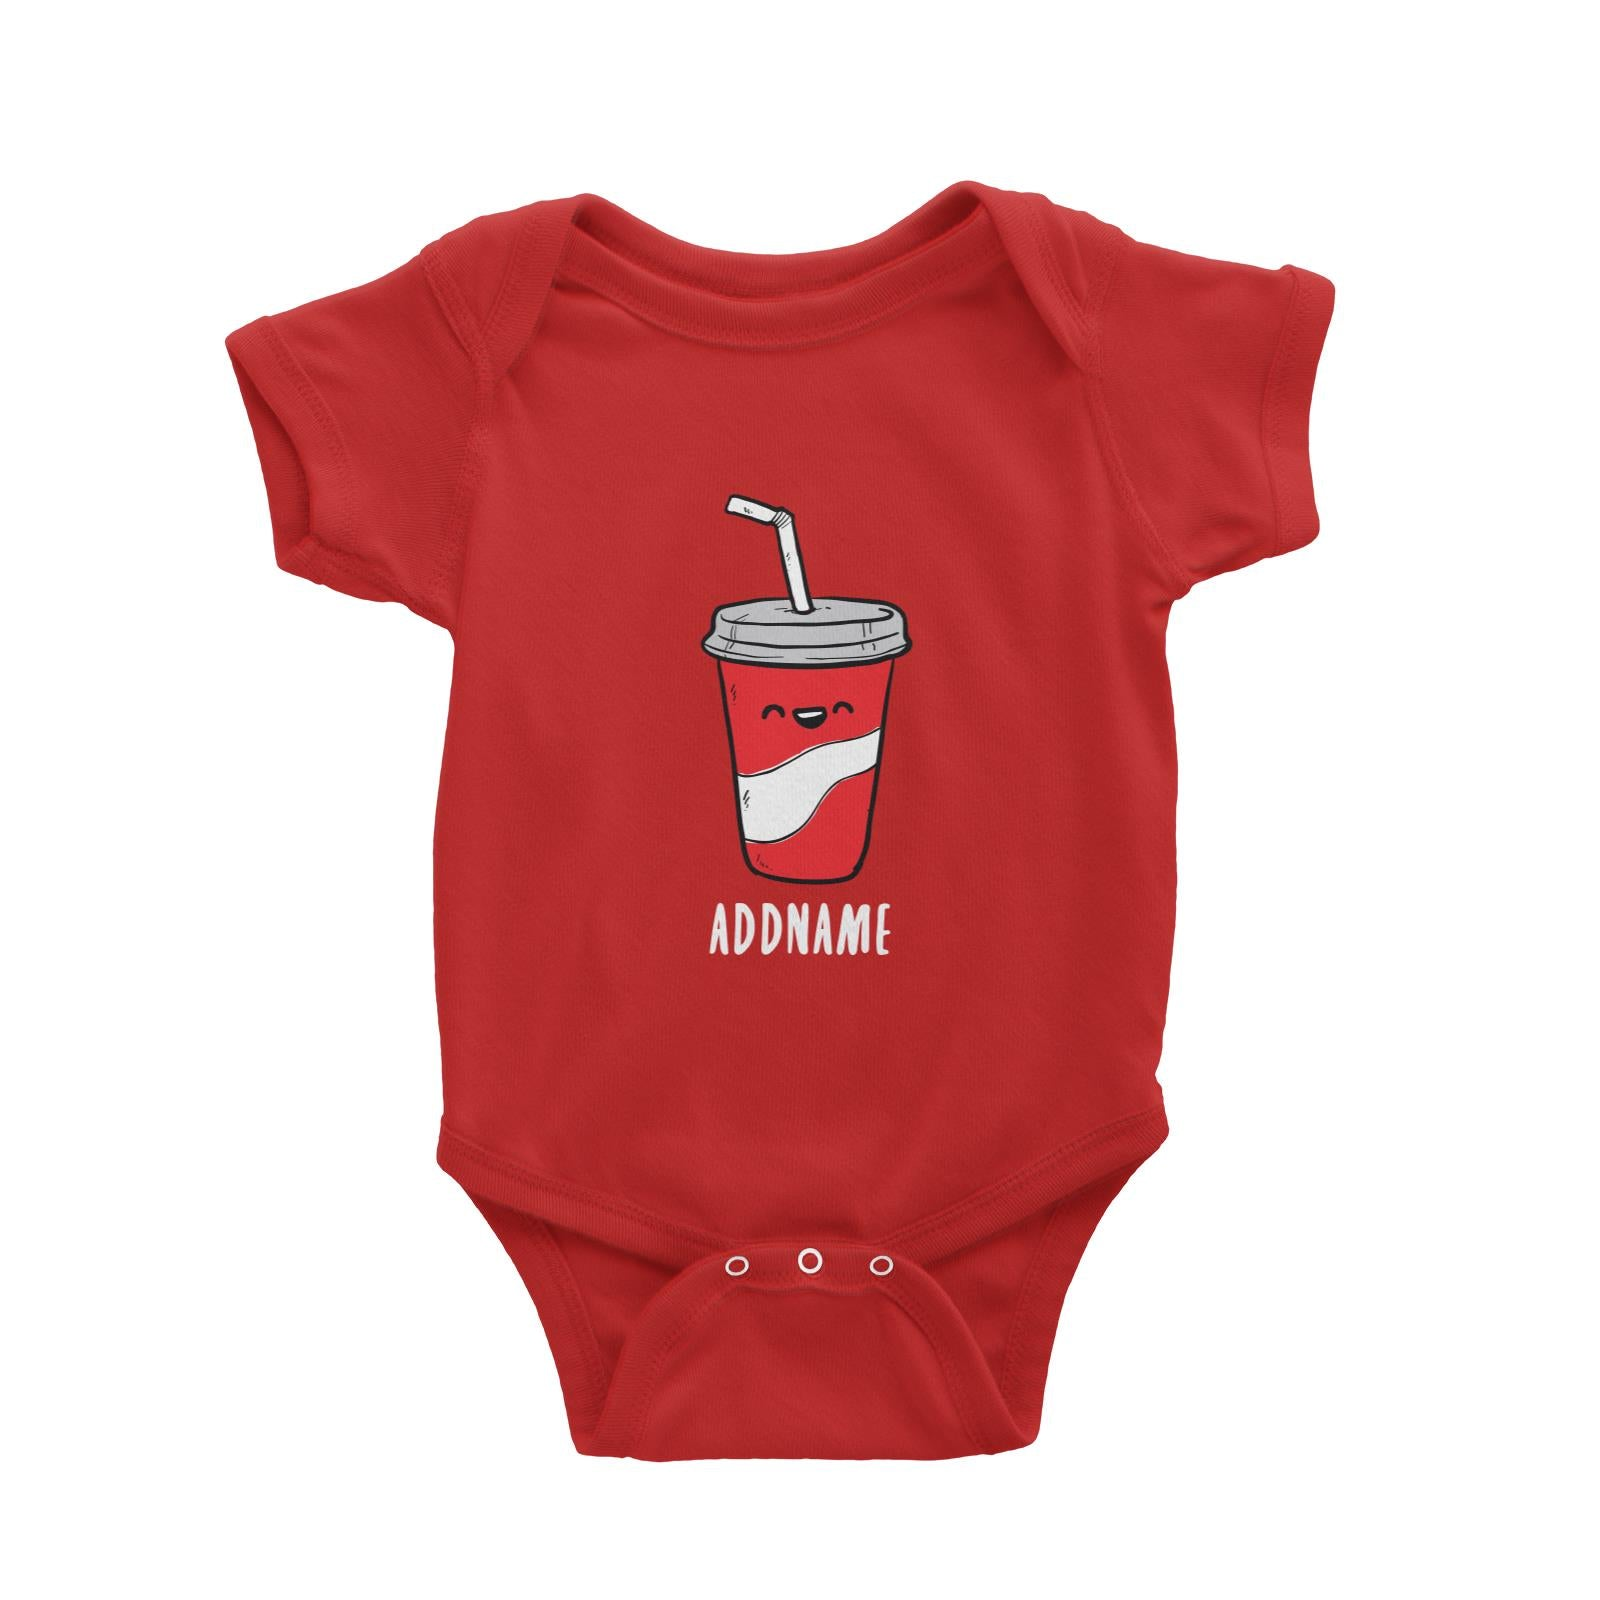 Fast Food Coke Addname Baby Romper  Comic Cartoon Matching Family Personalizable Designs